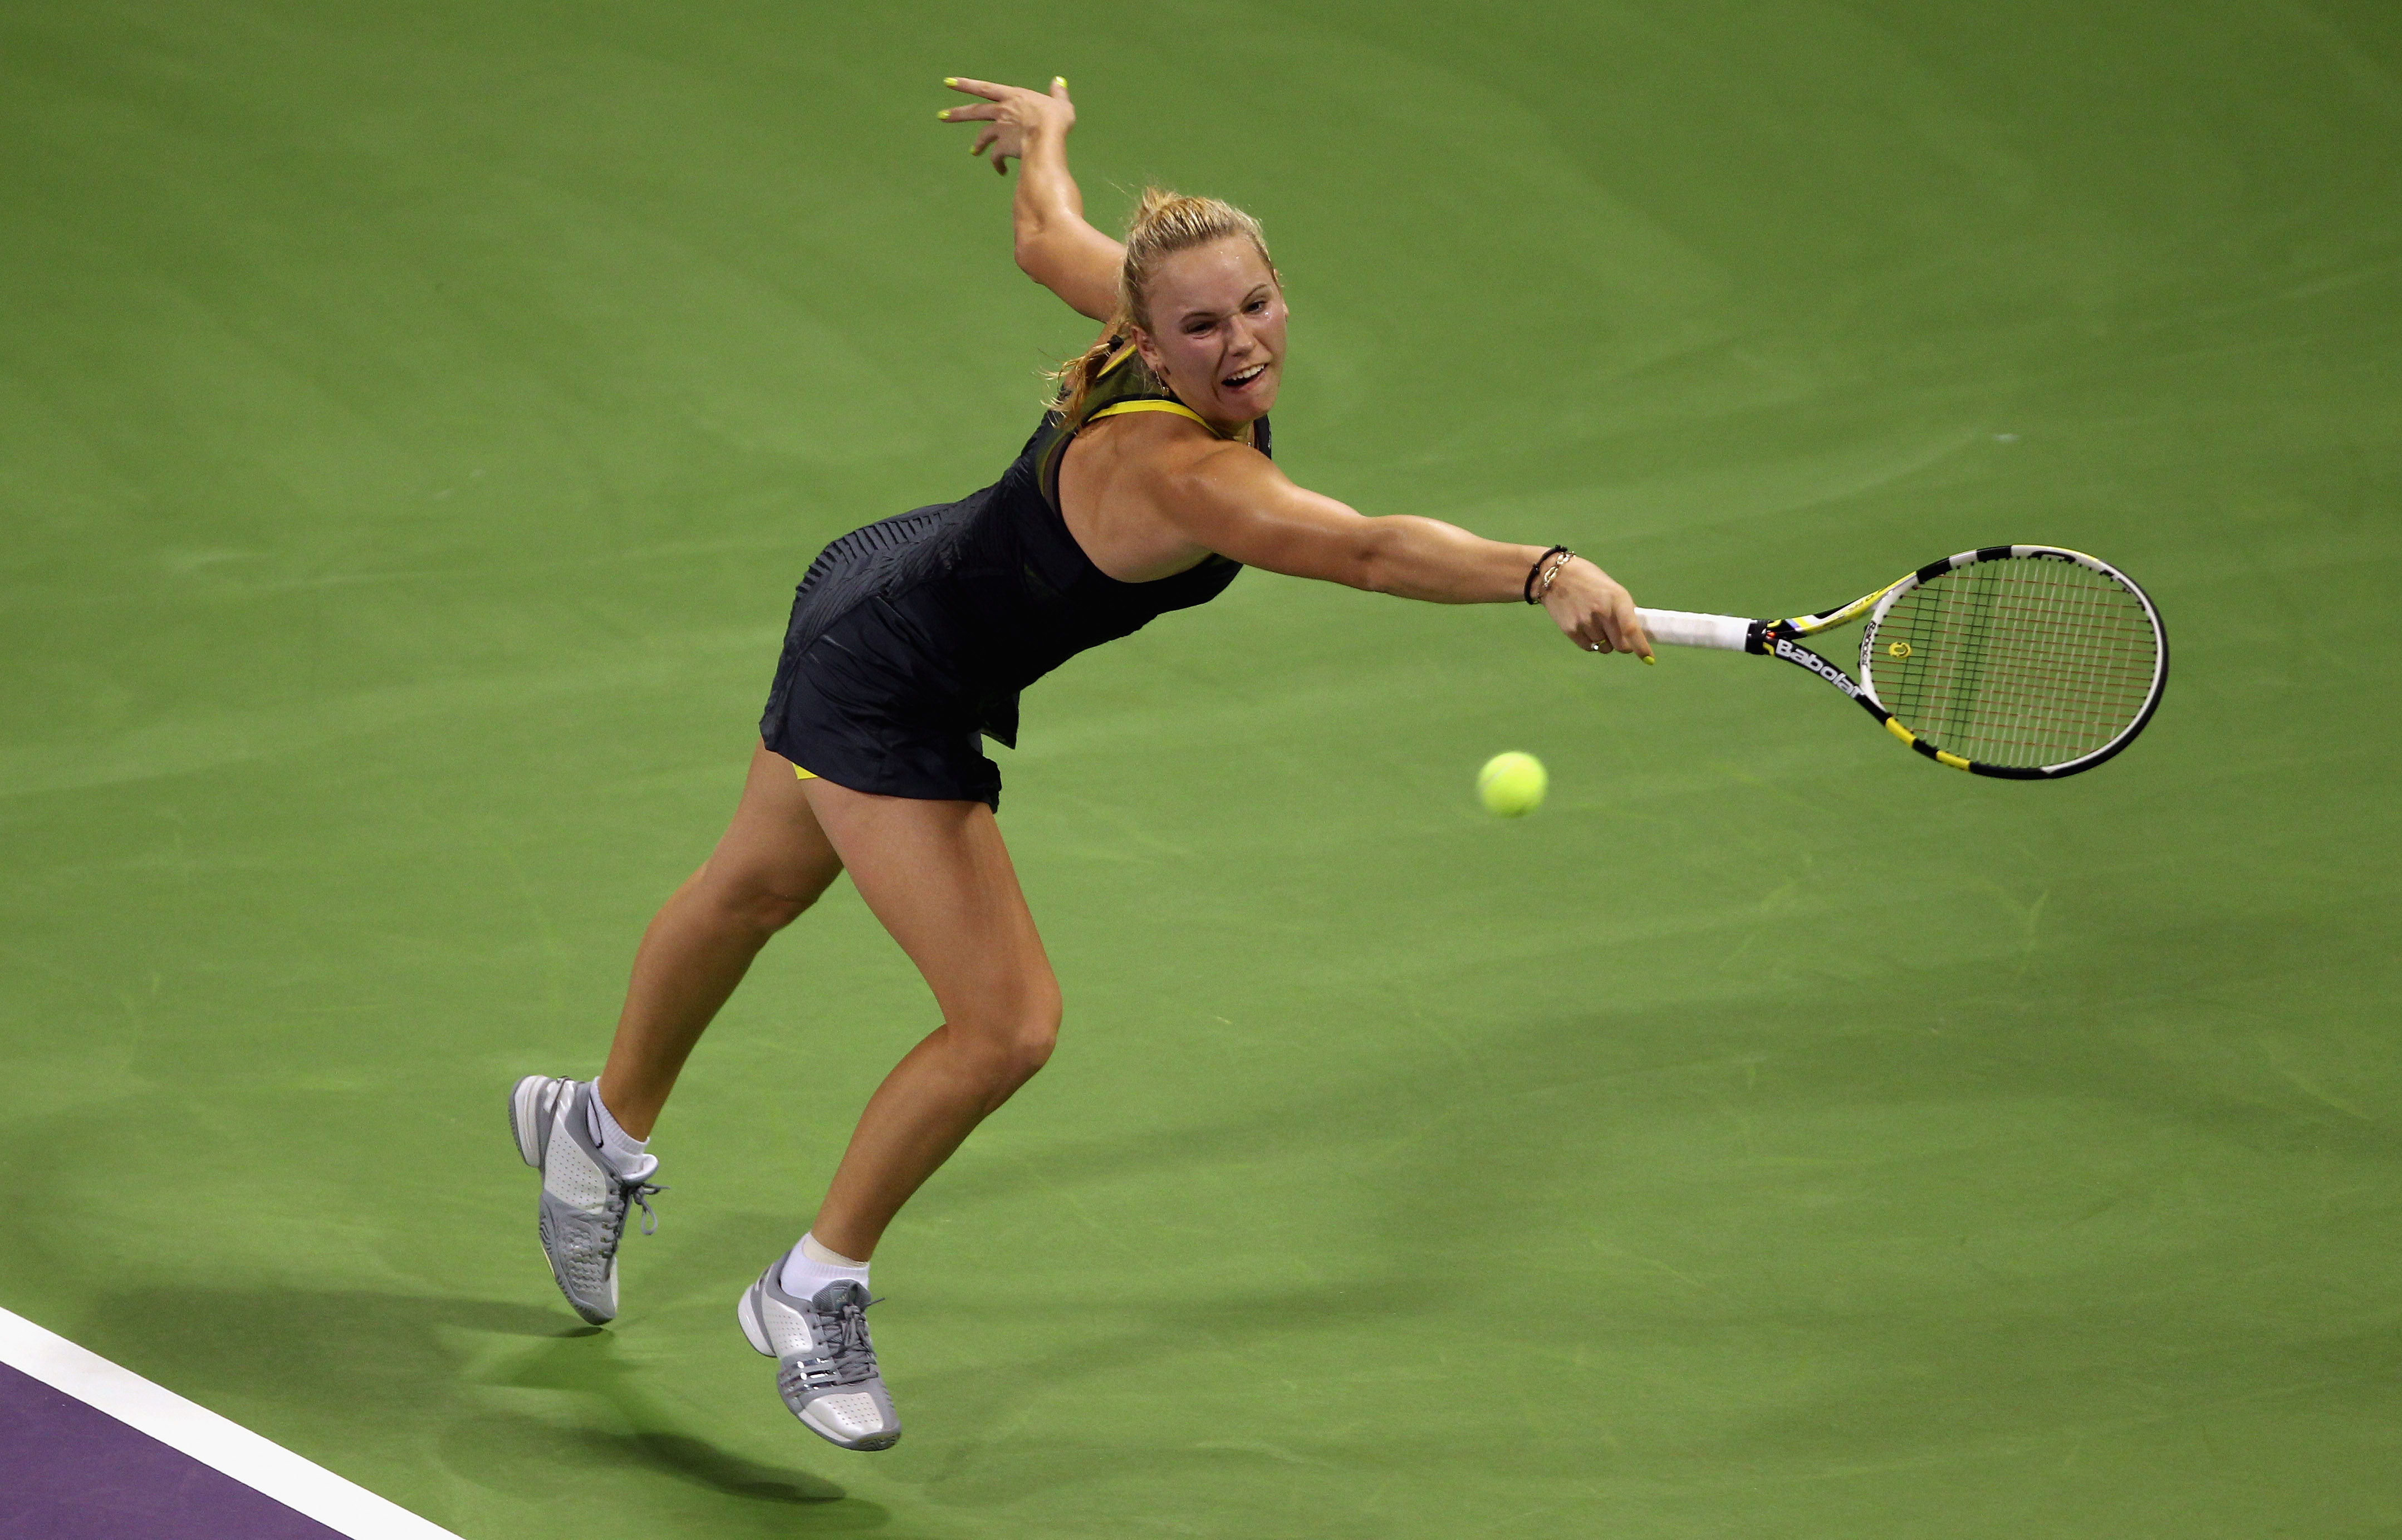 DOHA, QATAR - OCTOBER 30:  Caroline Wozniacki of Denmark returns a shot to Vera Zvonareva of Russia on day five of the WTA Championships at the Khalifa Tennis Complex on October 30, 2010 in Doha, Qatar.  (Photo by Bryn Lennon/Getty Images)